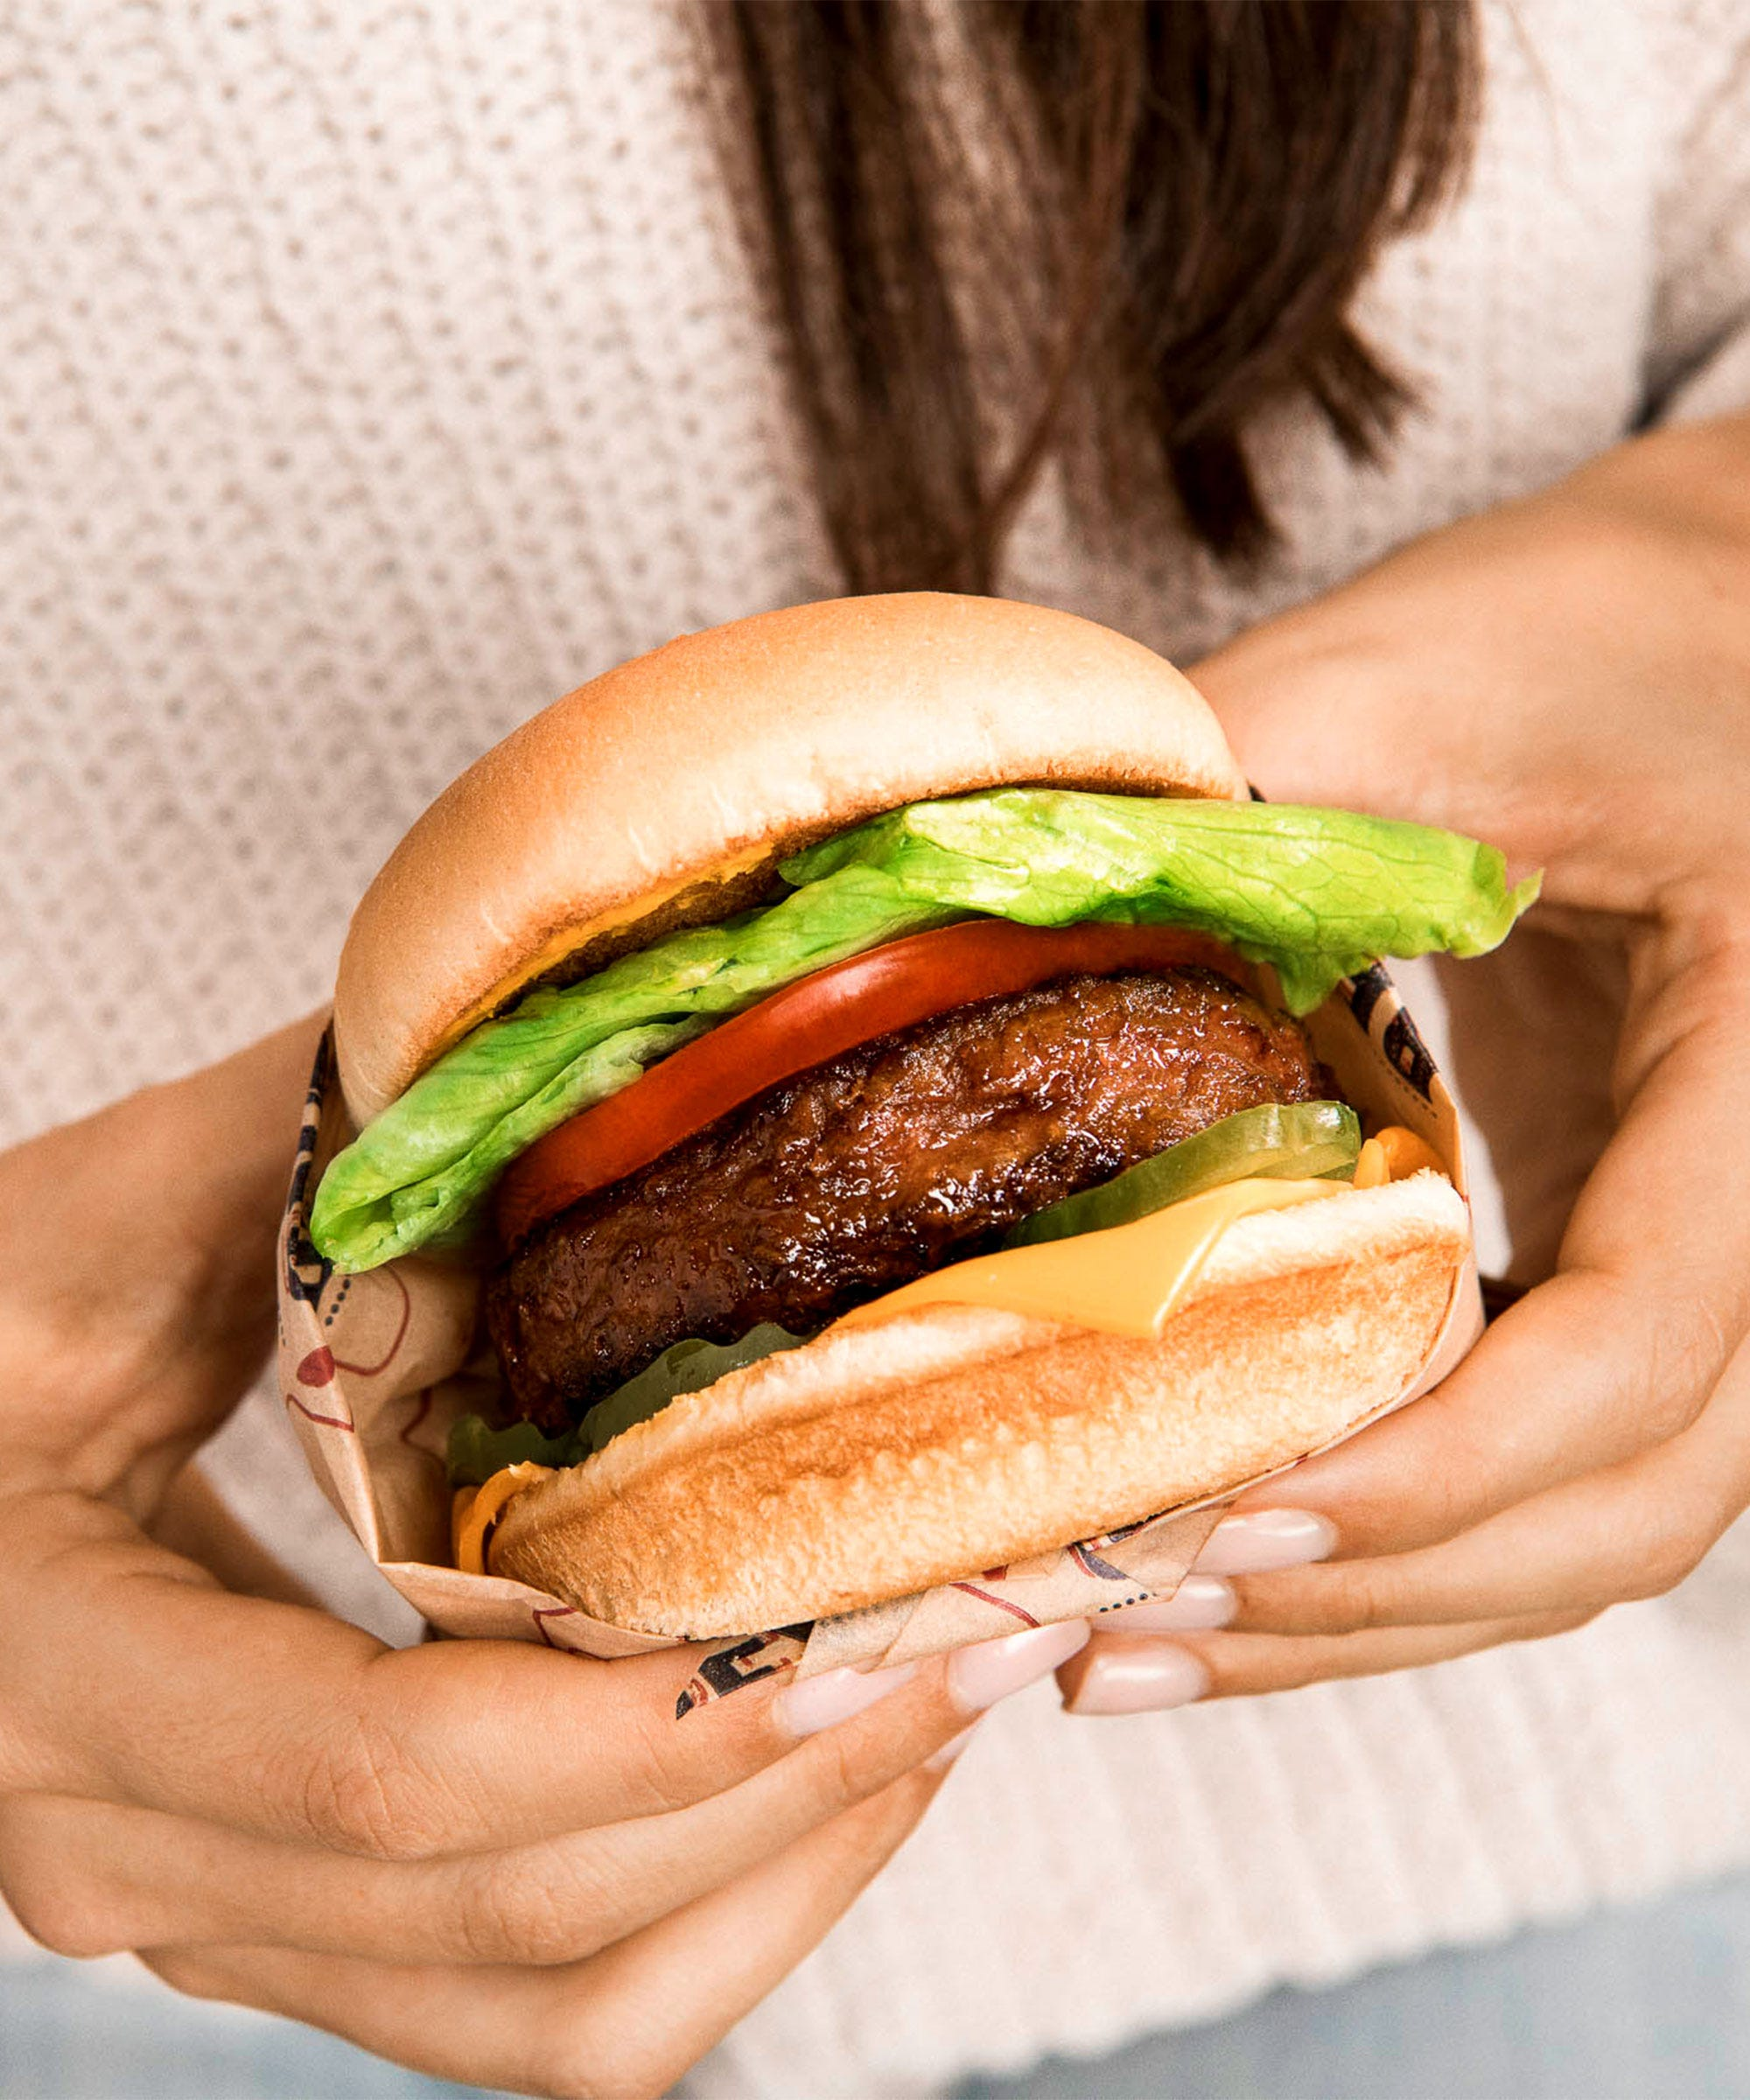 Beyond Burgers: A Vegan's Dream Or Just Another Trend?